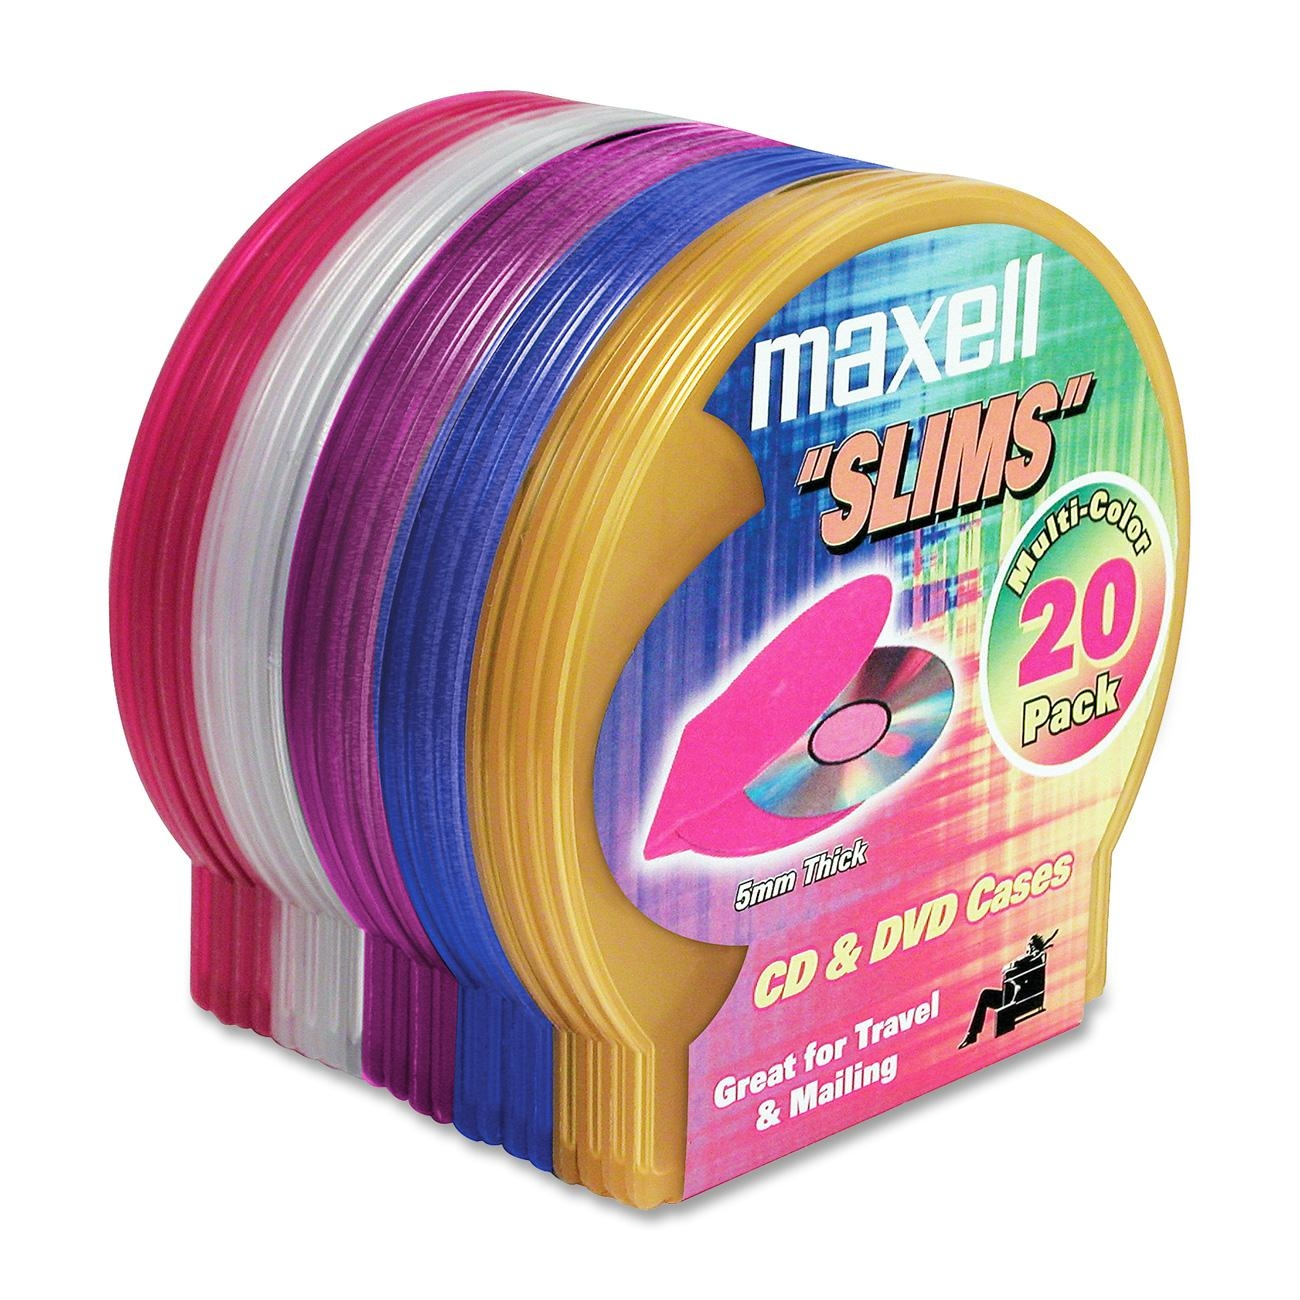 Maxell CD-355 Jewel Plastic Cases - Random Colors, 20-Pack